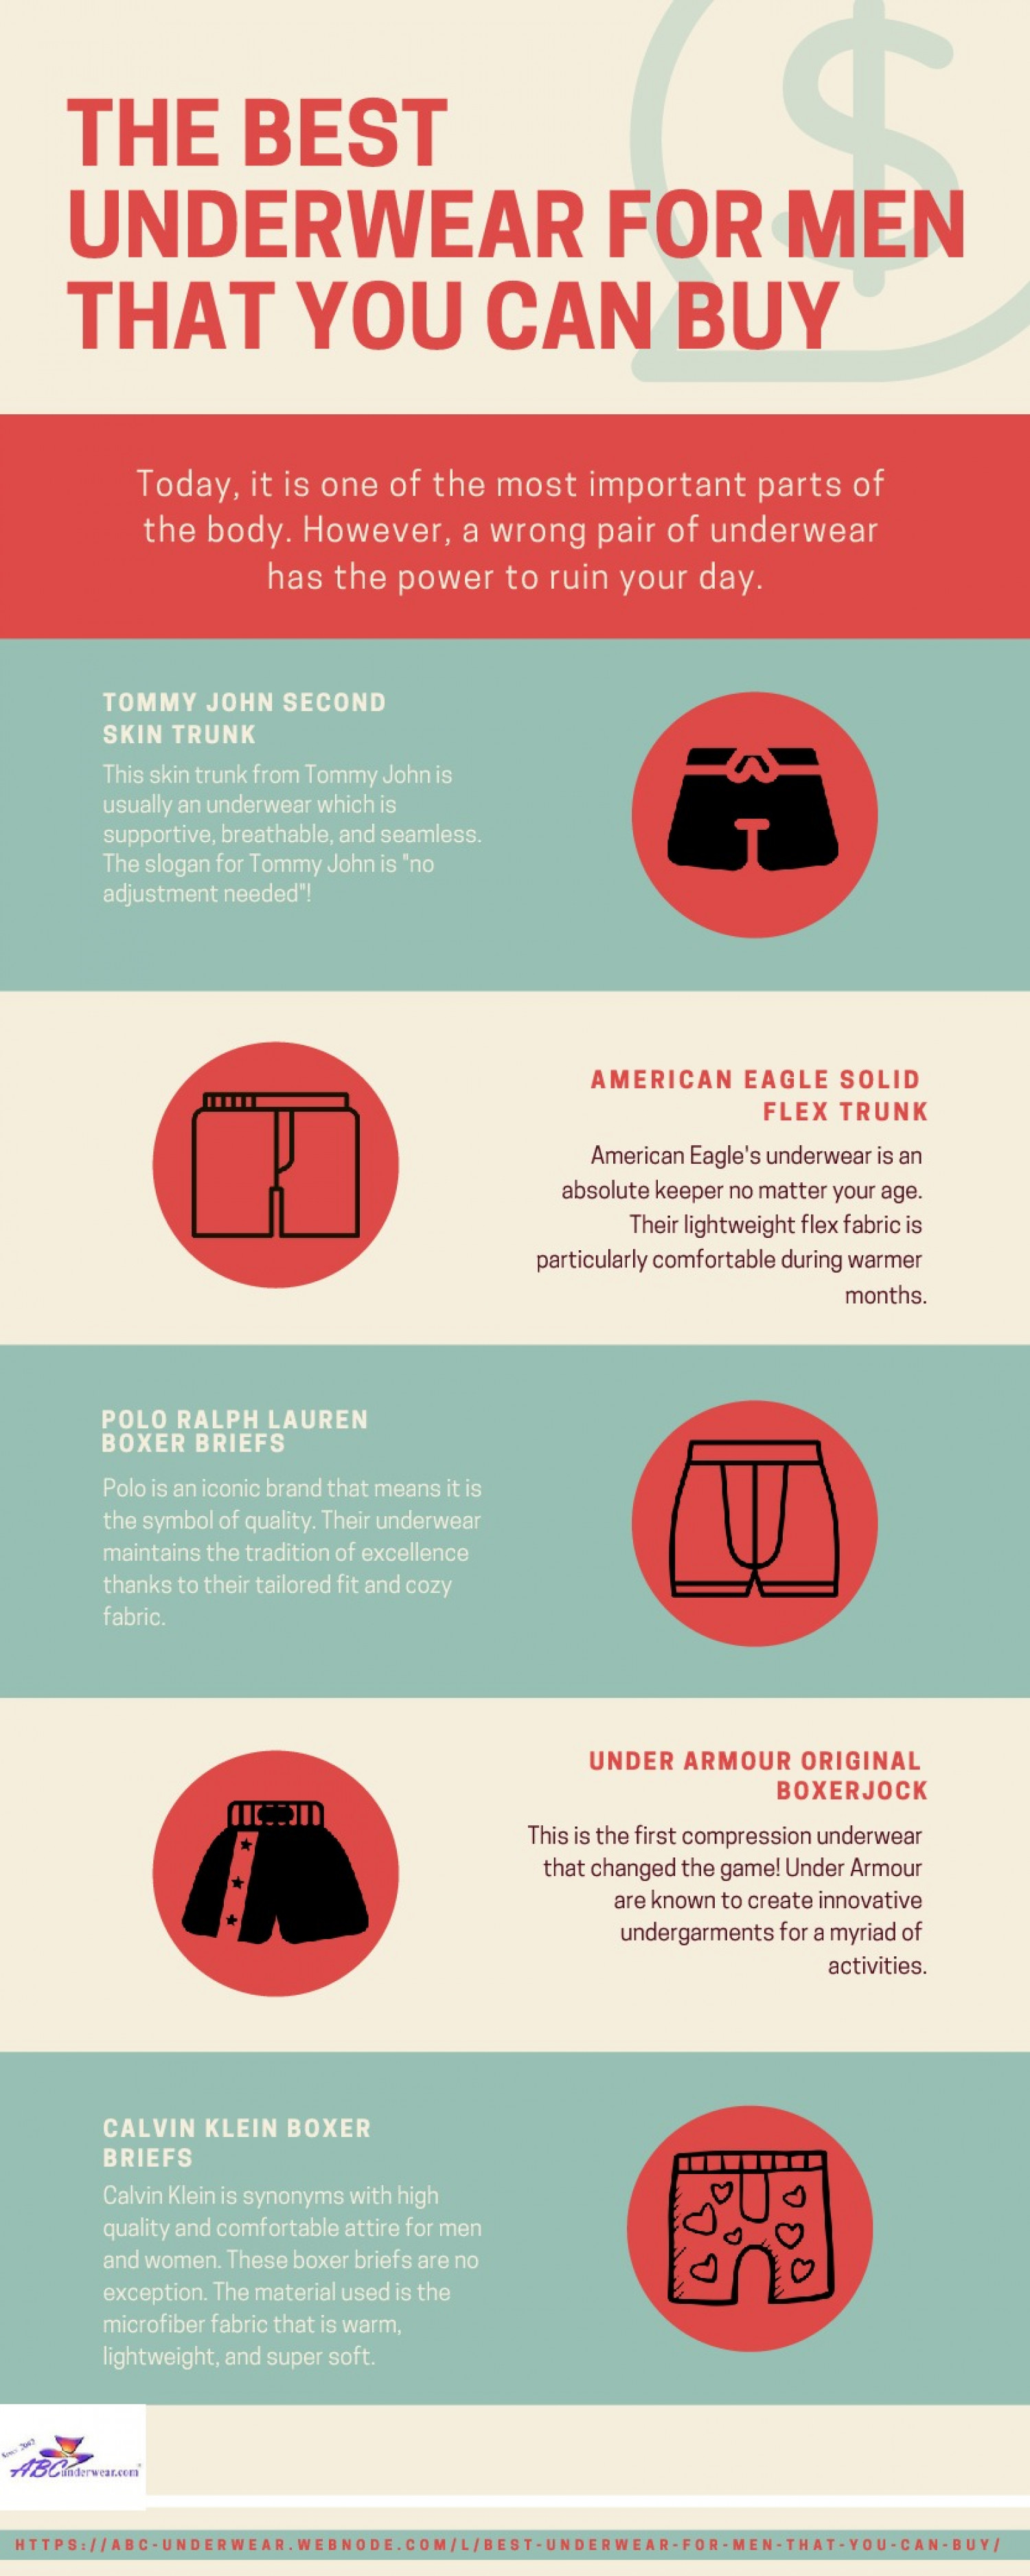 The Best Underwear for Men that You can Buy Infographic